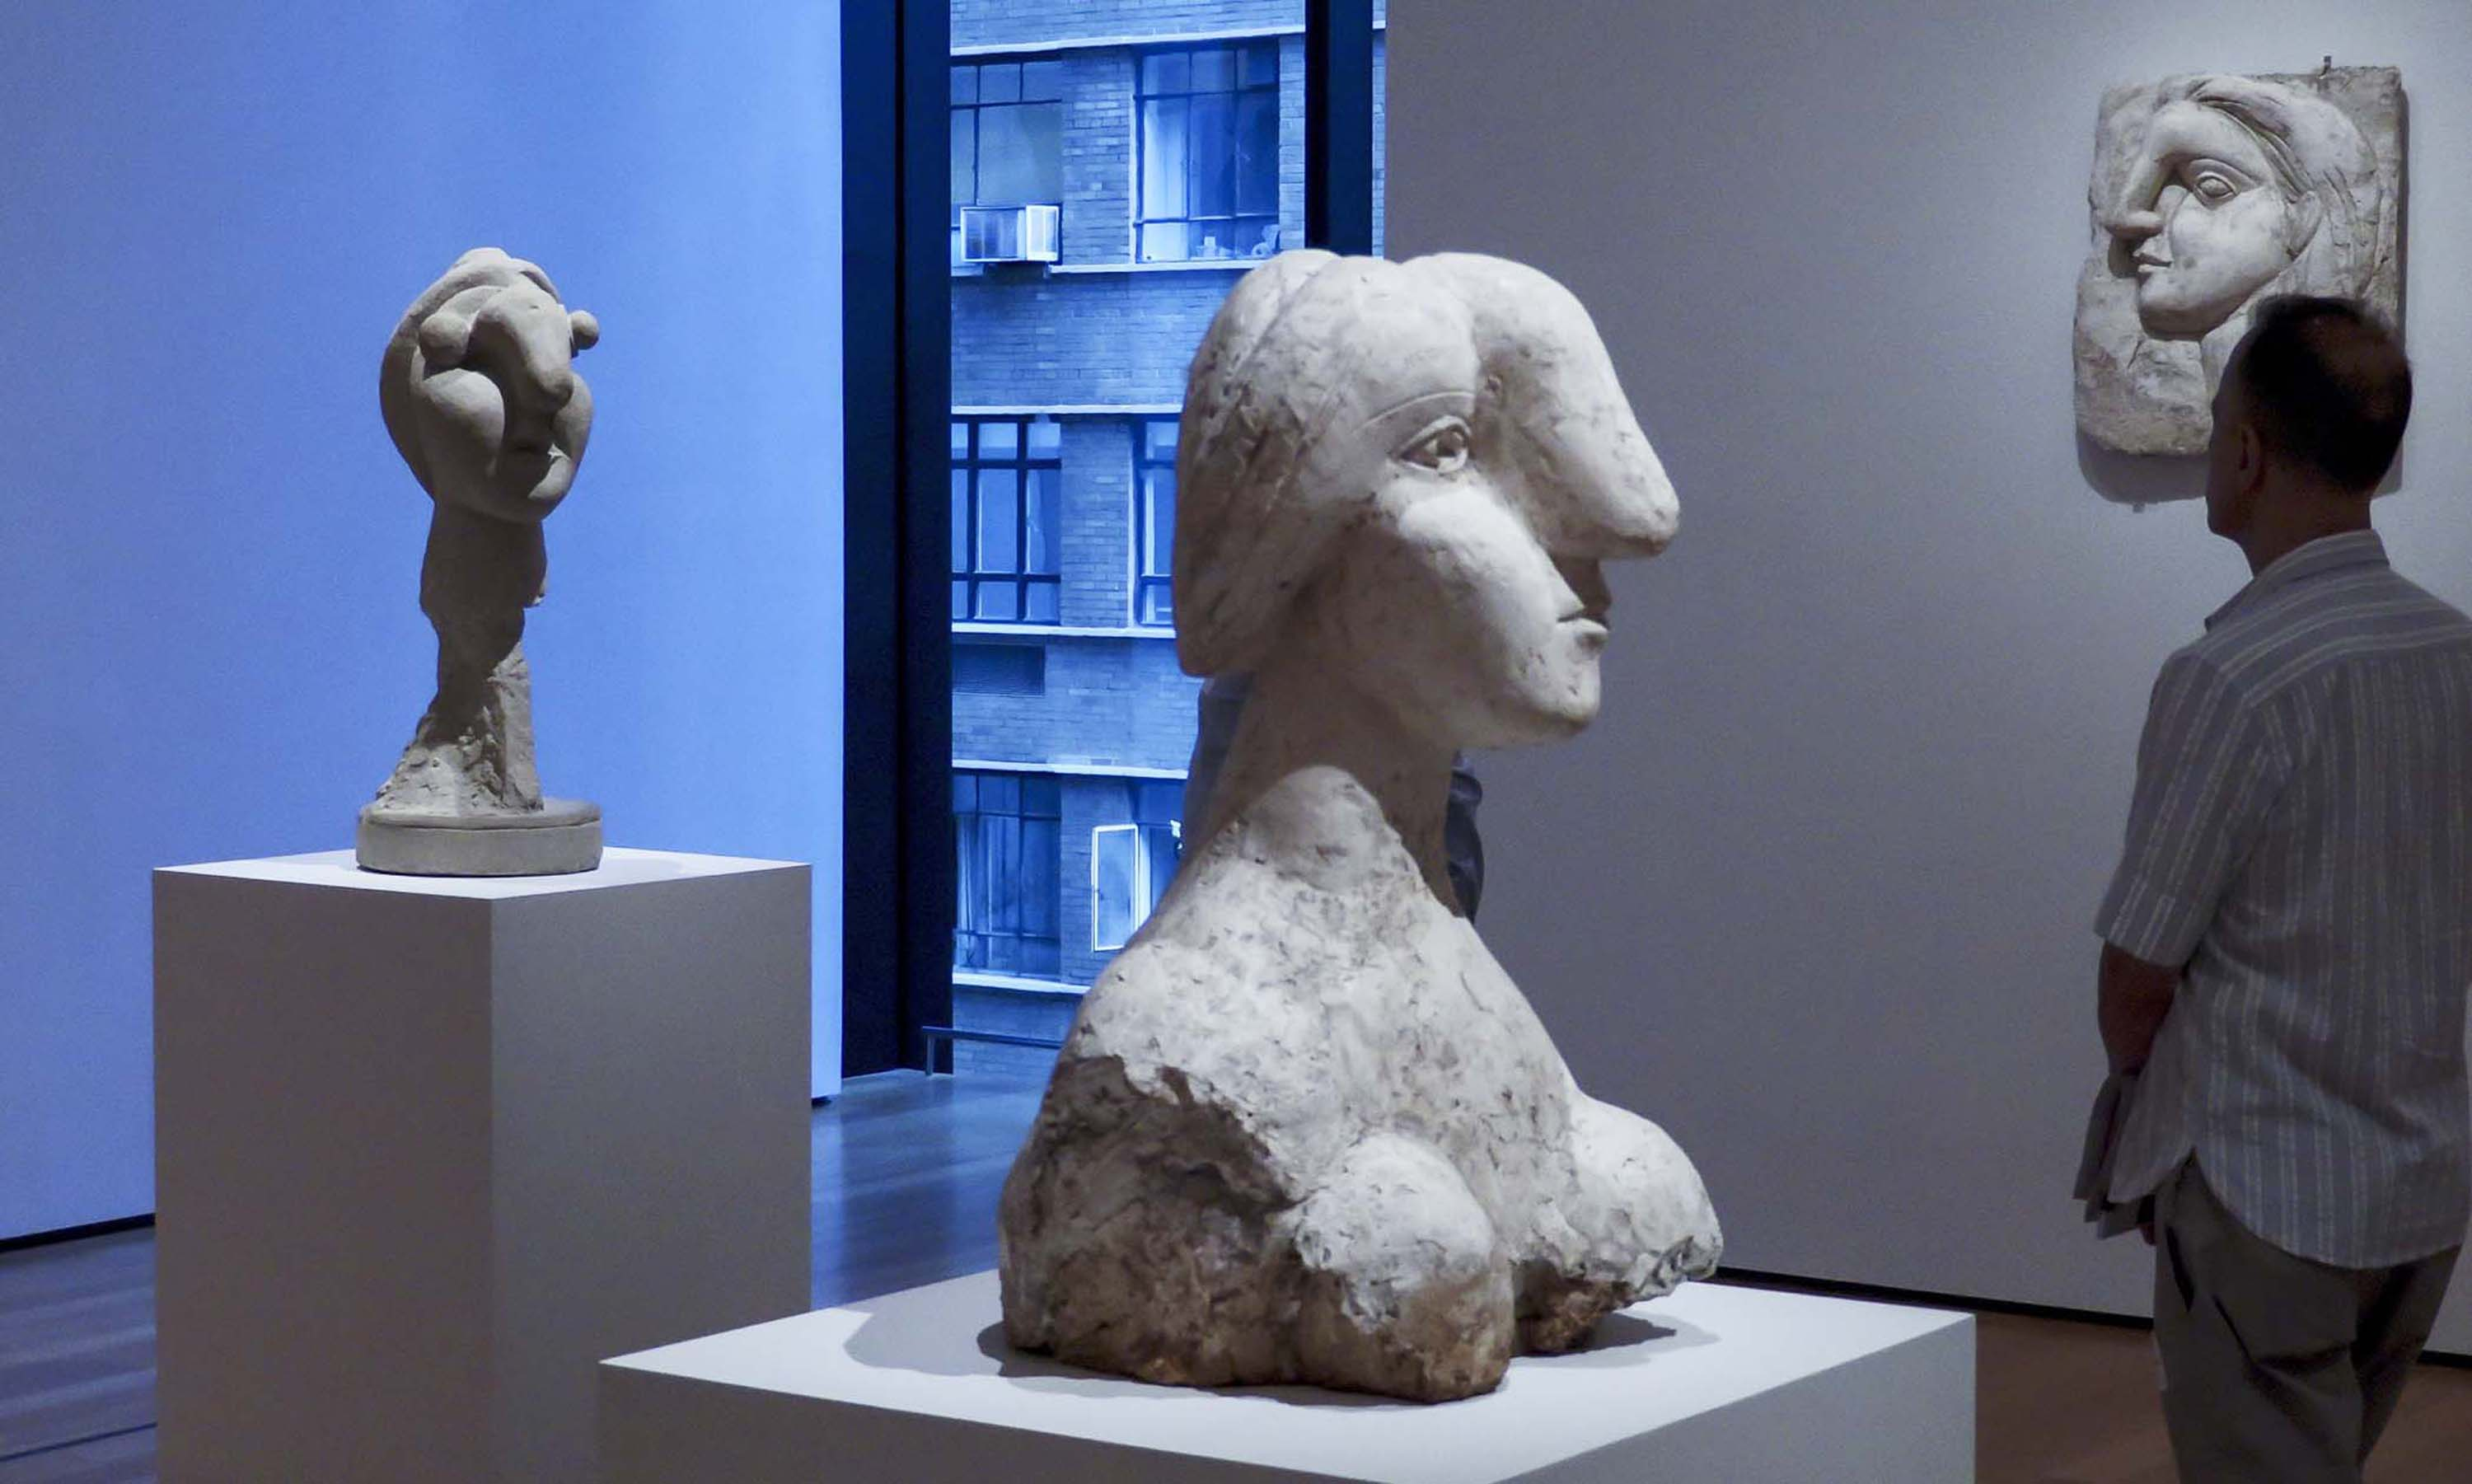 Picasso's mistress Marie-Thérèse Walter inspired these works in plaster from 1931